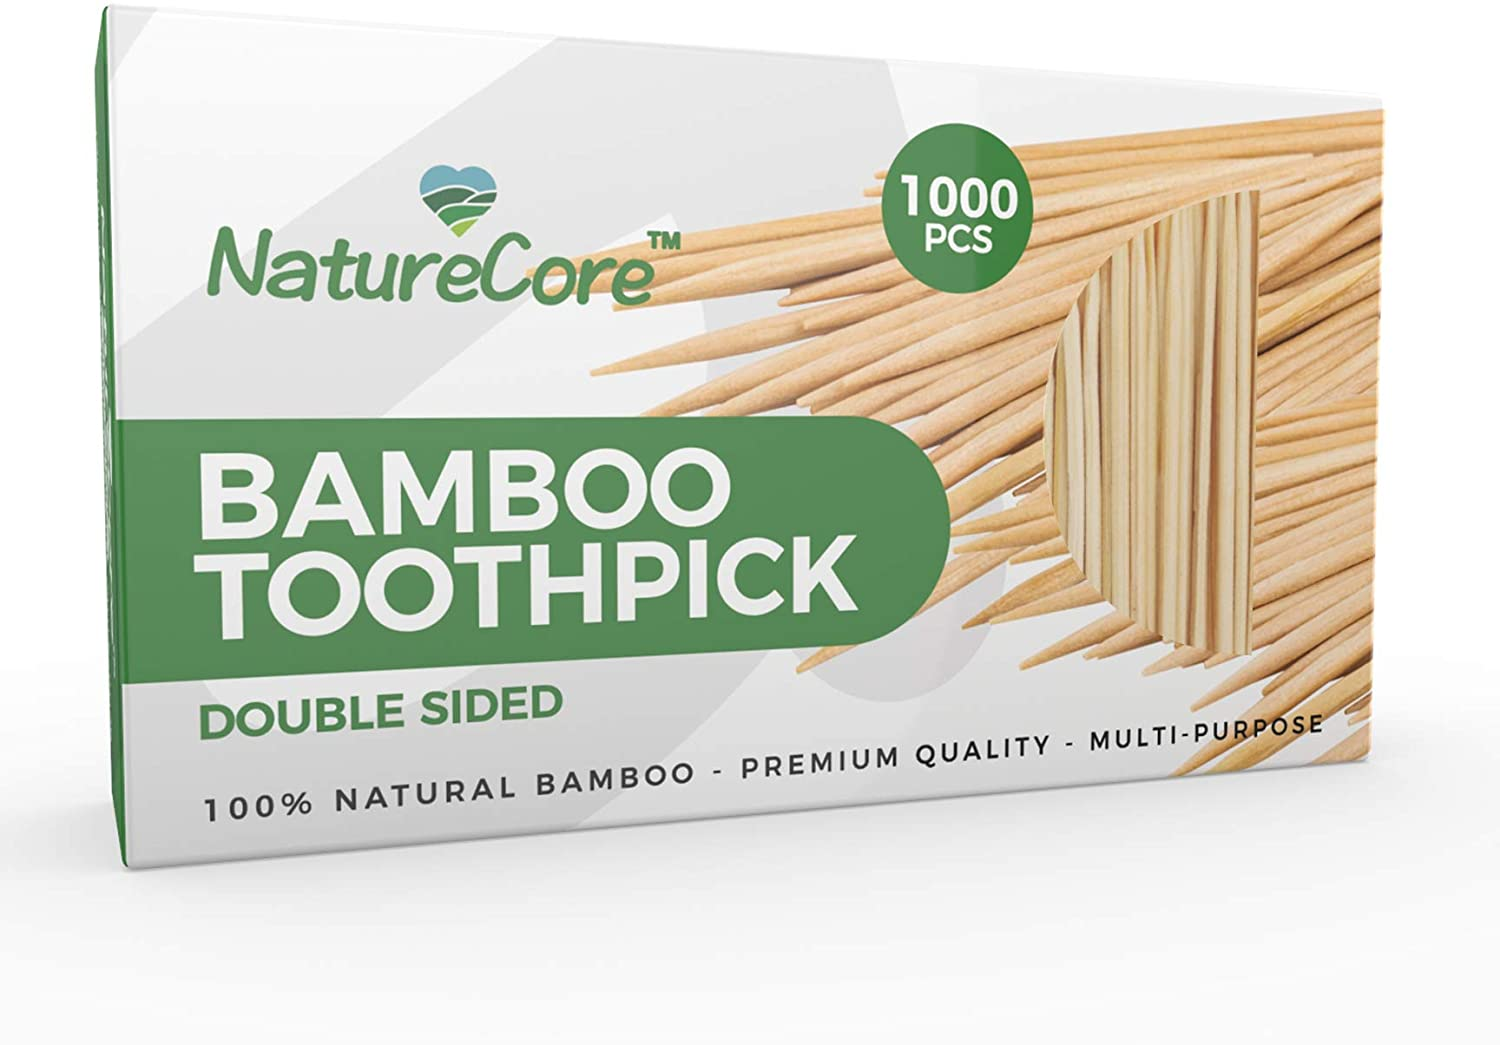 #8. NEW NatureCore Bamboo Toothpicks Wooden – 1000 CT